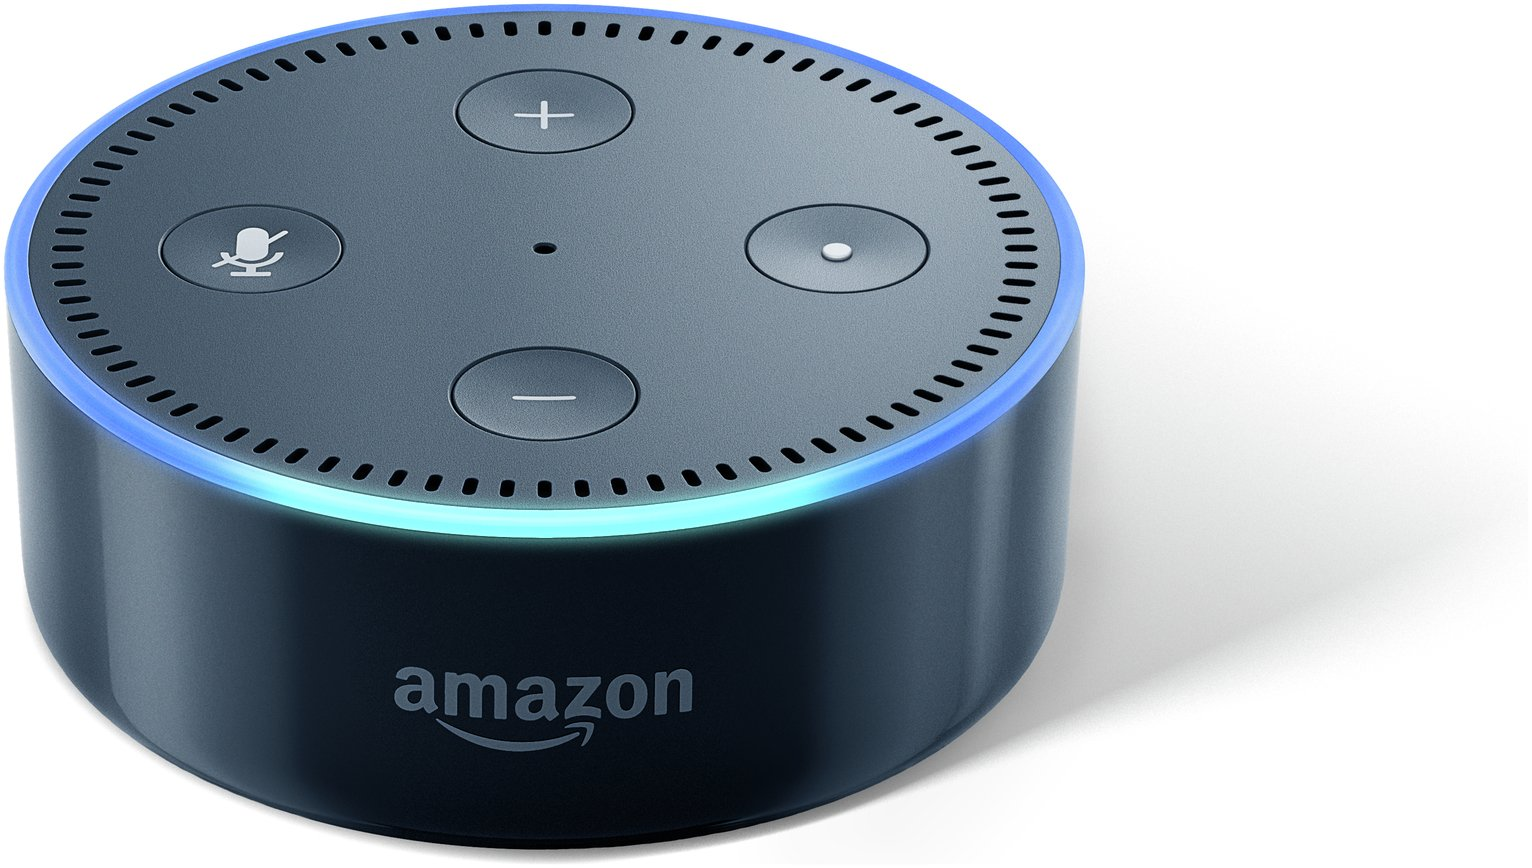 Image of Amazon Echo Dot Multimedia Speaker - Black.